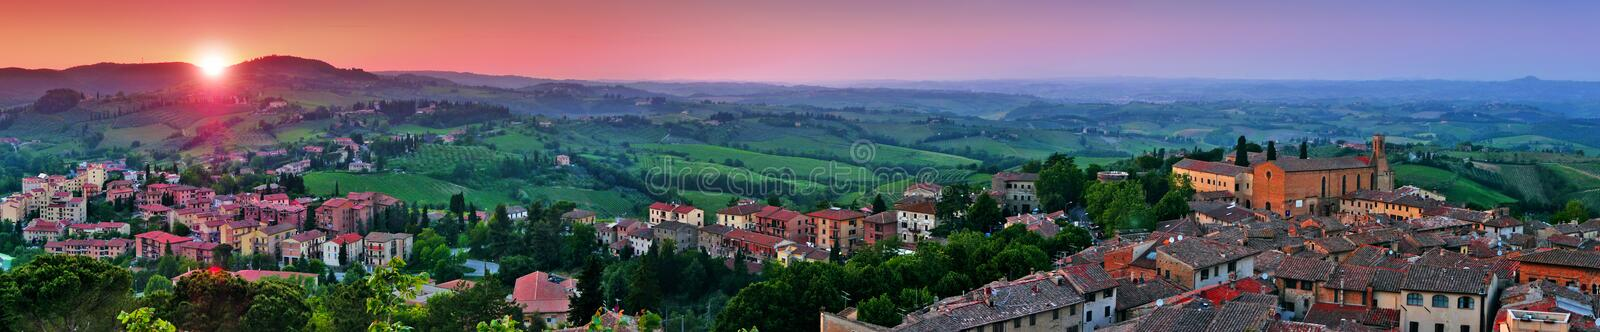 Panoramic view of beautiful landscape with the medieval city of San Gimignano at sunset in Tuscany, province of Siena, Italy stock images